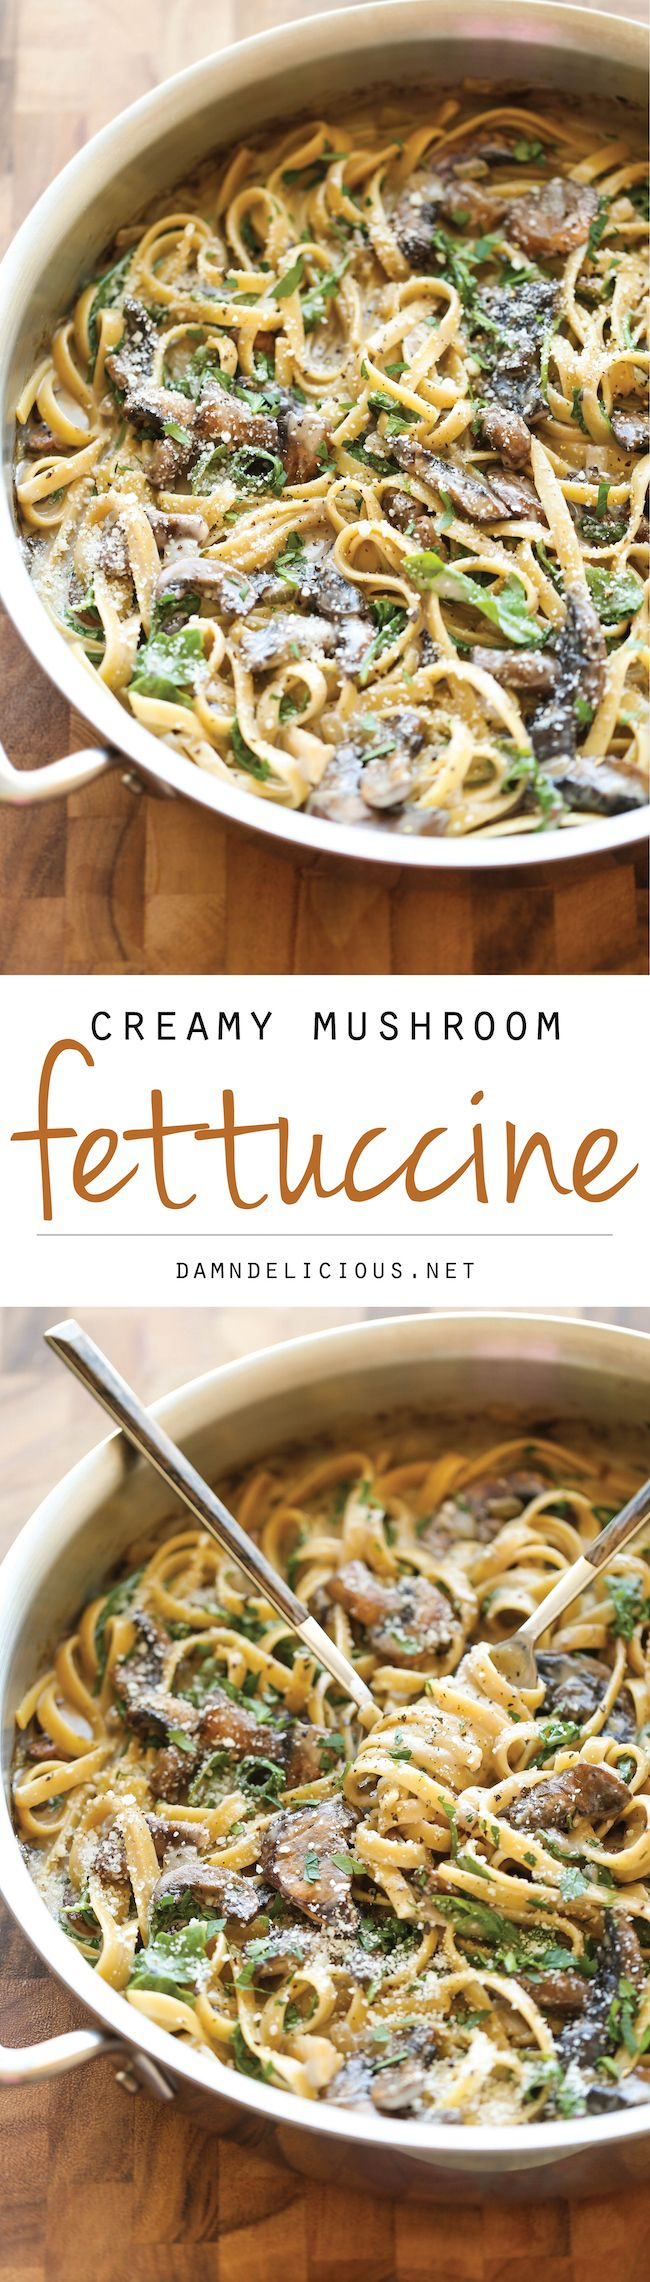 Creamy Mushroom Fettuccine - I sub cooked, puréed cauliflower for flour and milk/cream. Delish! ks